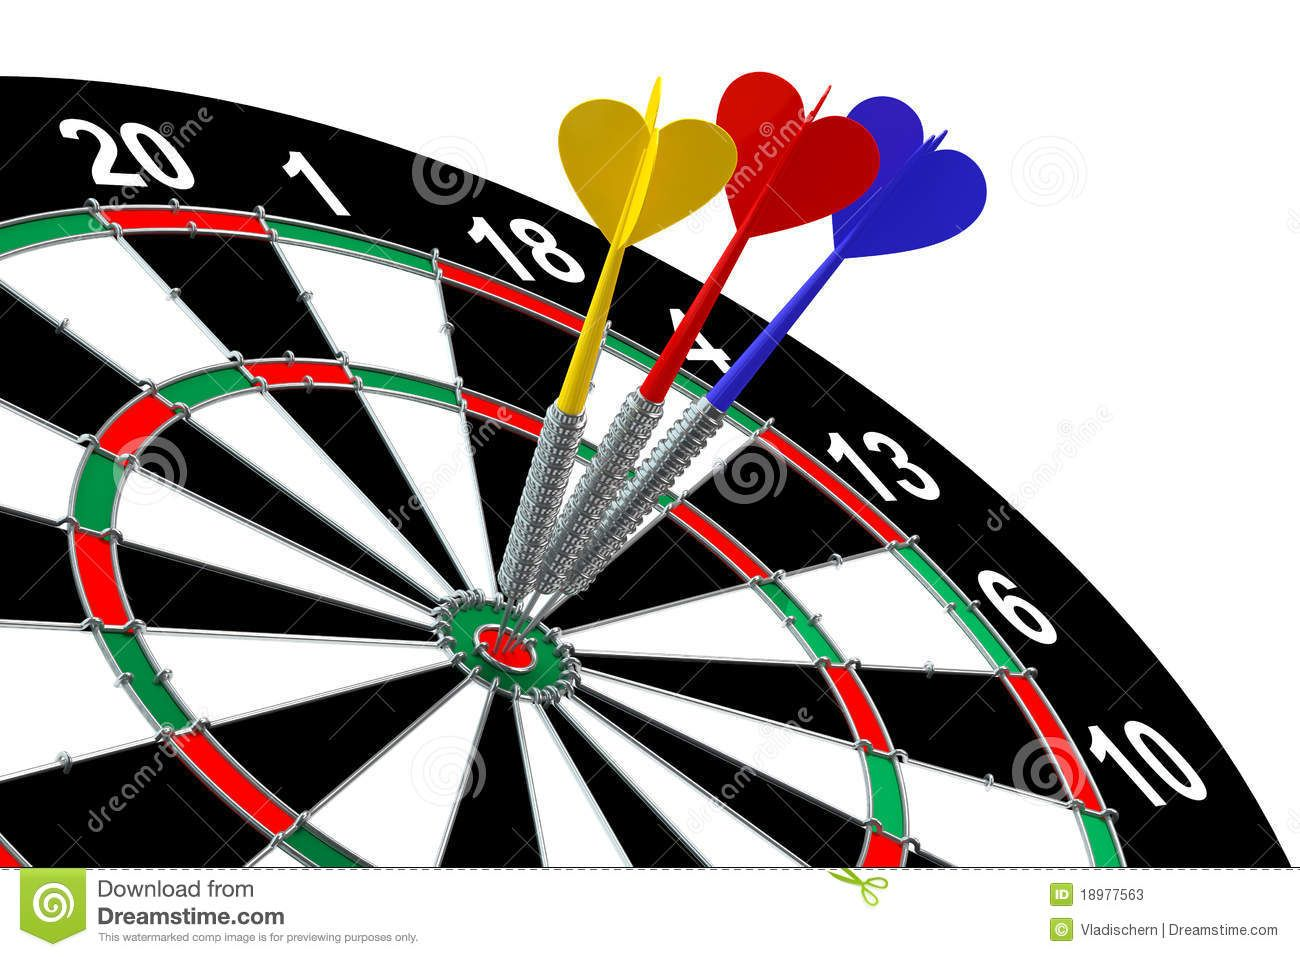 Bullseye Darts provide the best quality products at